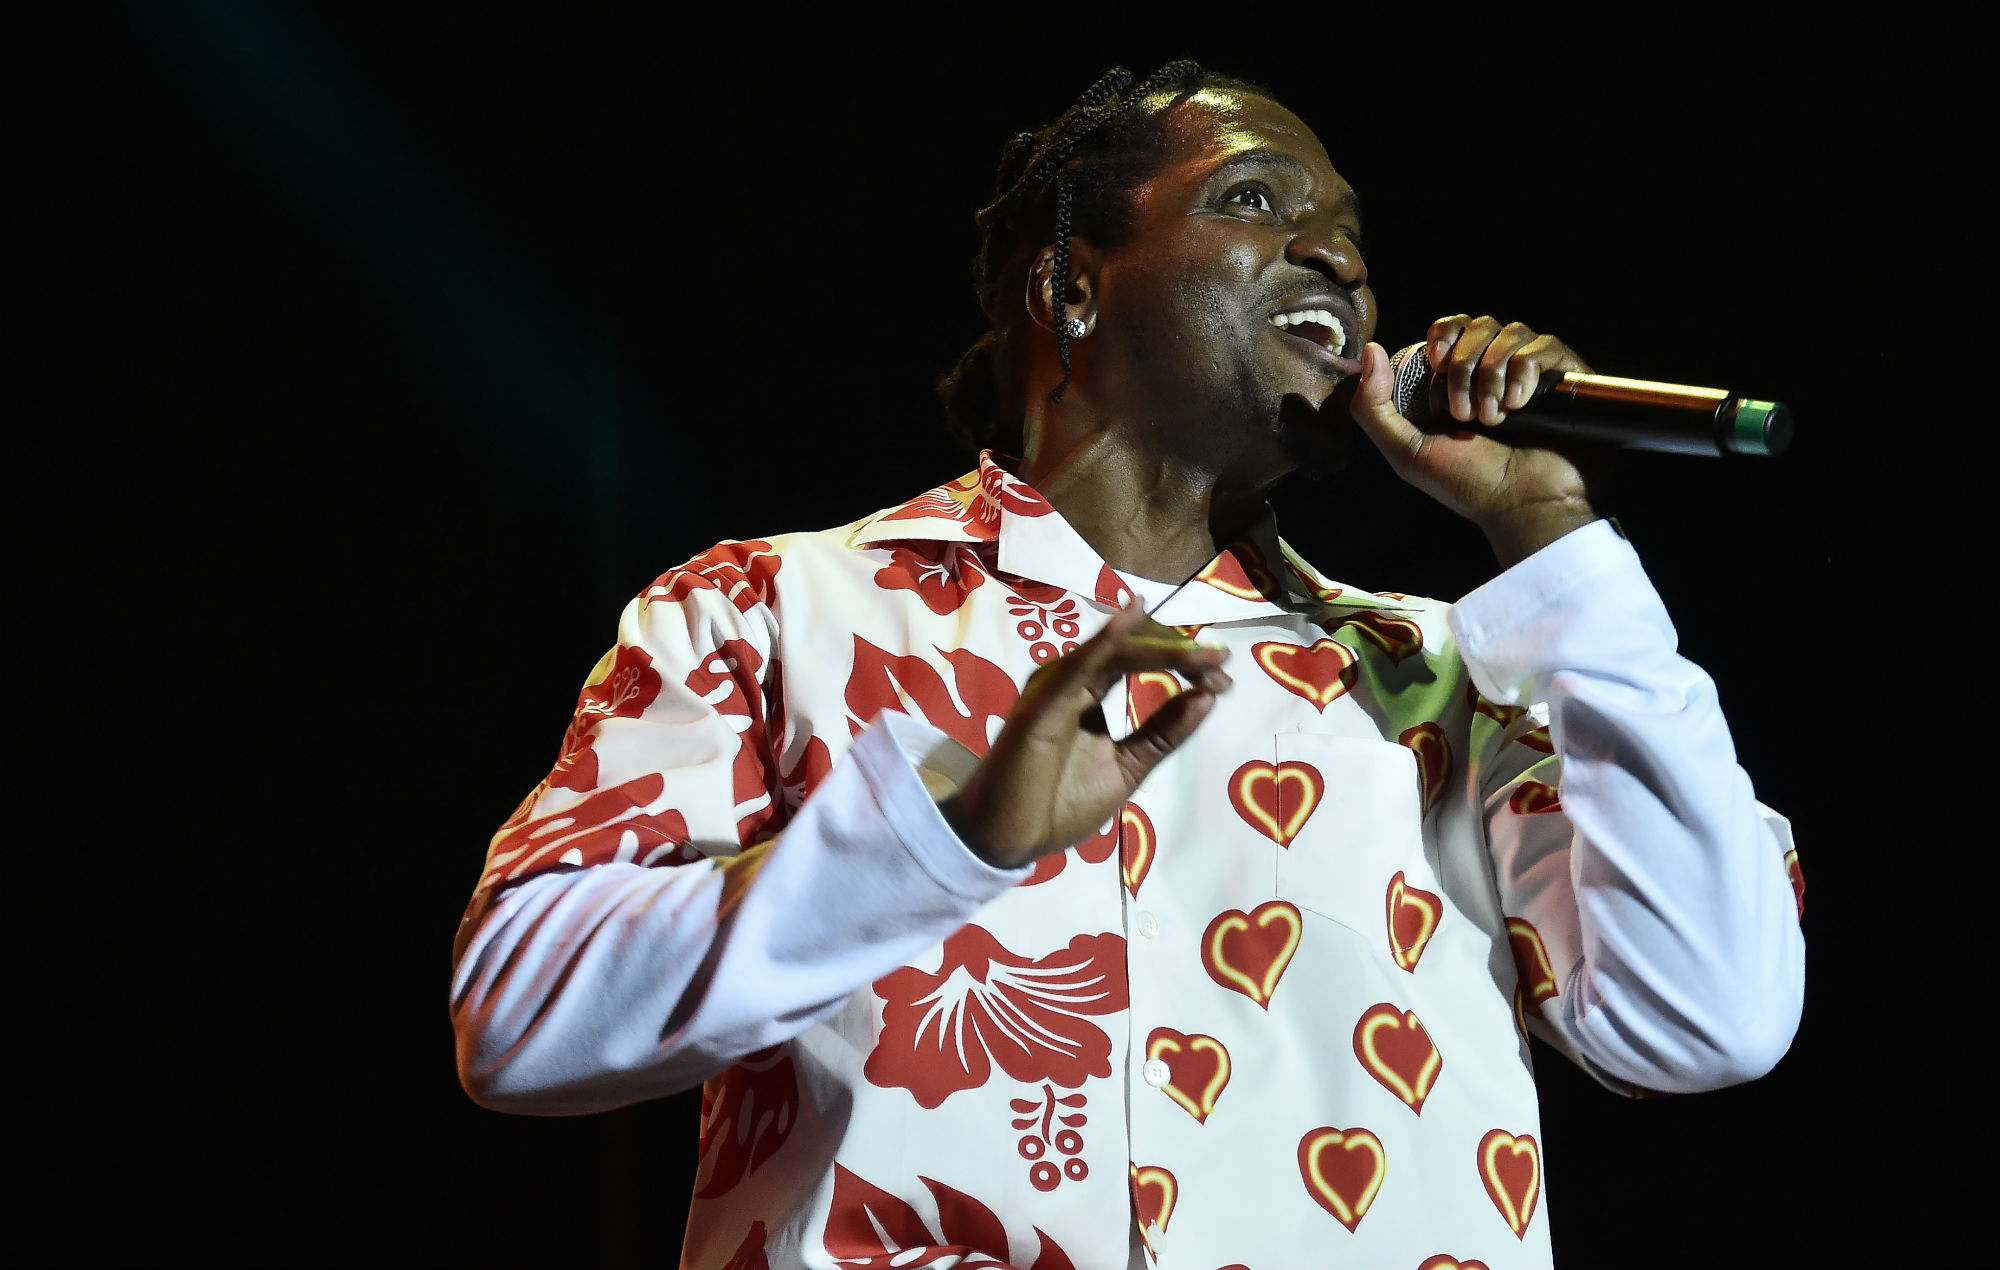 Pusha T issues warning to whoever has been leaking his music